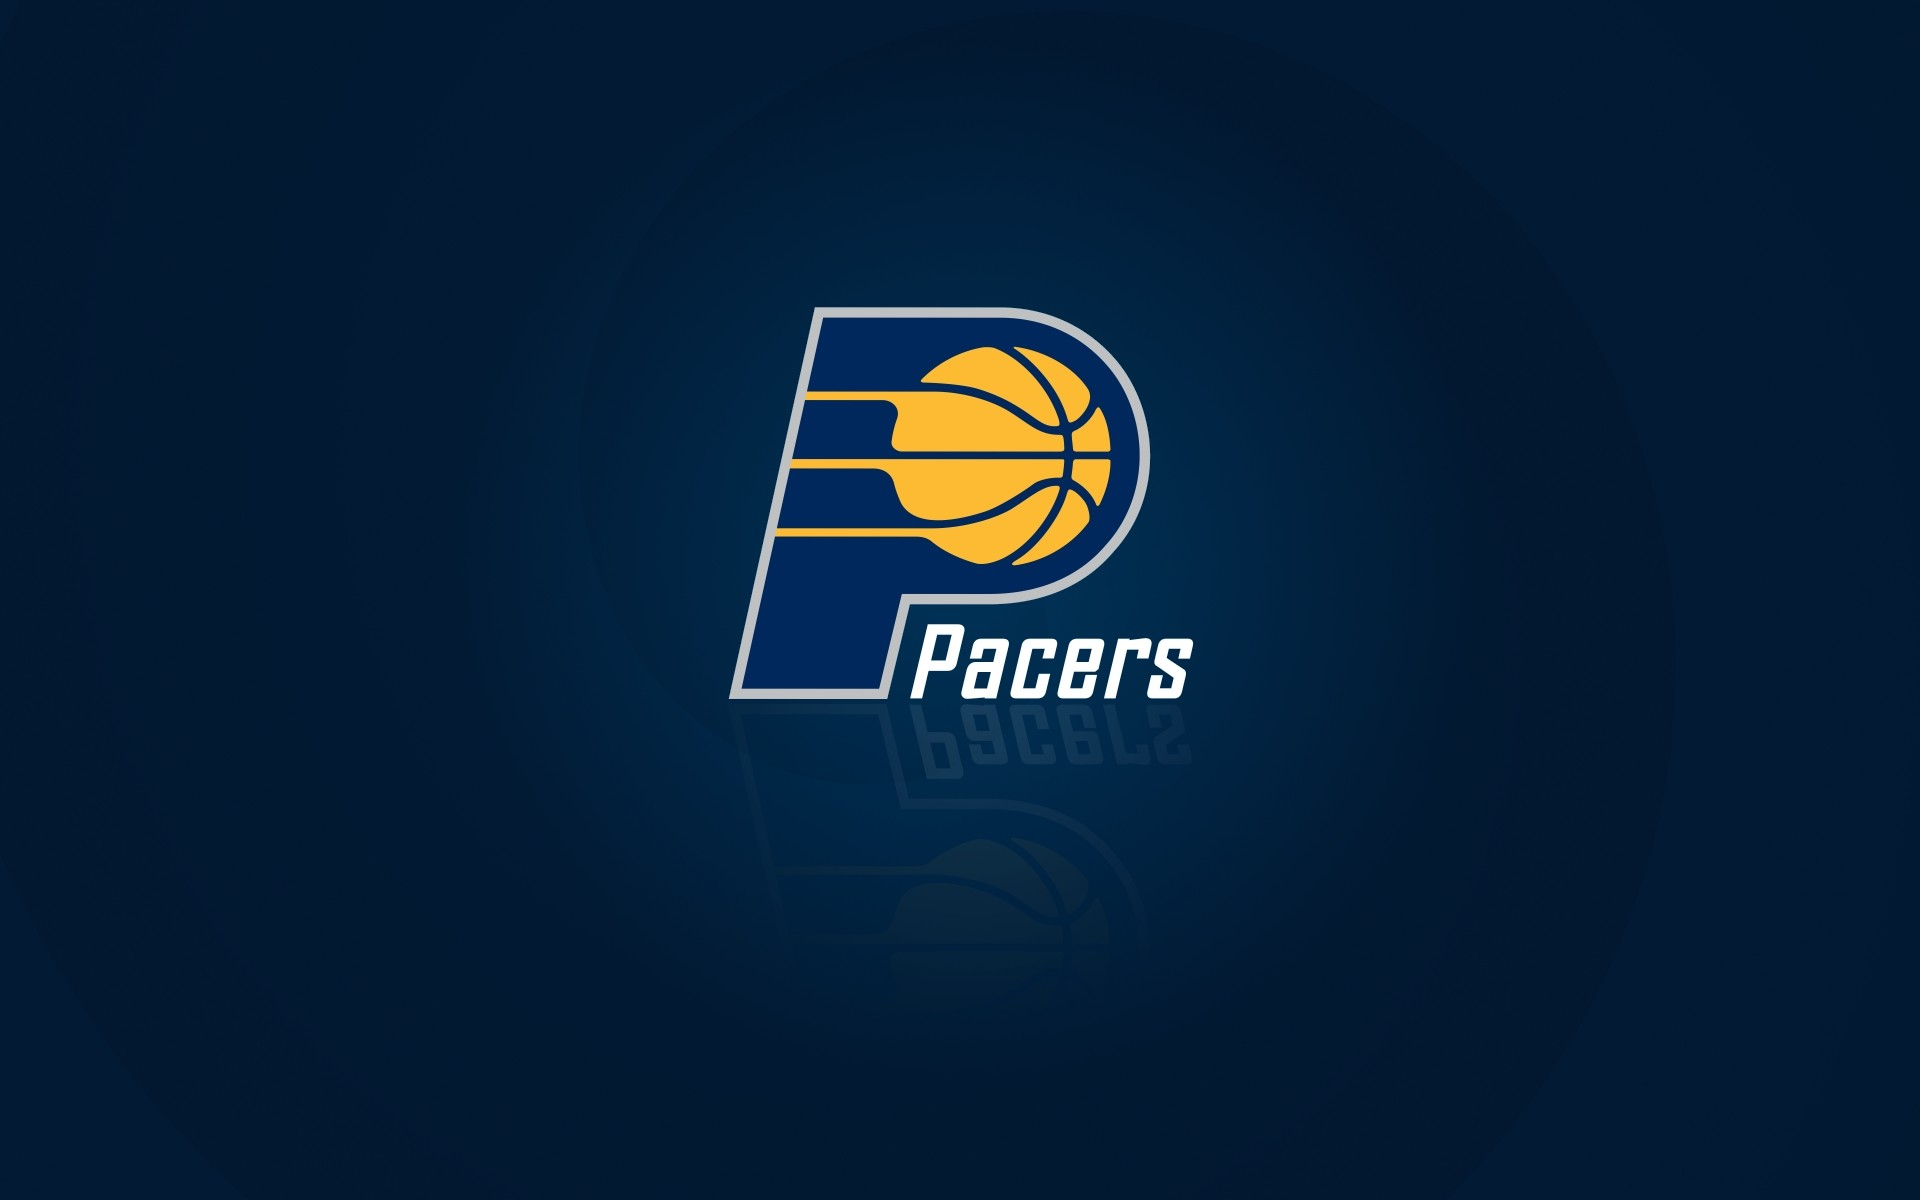 1920x1200 Indiana Pacers HD Wallpaper | Background Image |  | ID:982736 -  Wallpaper Abyss